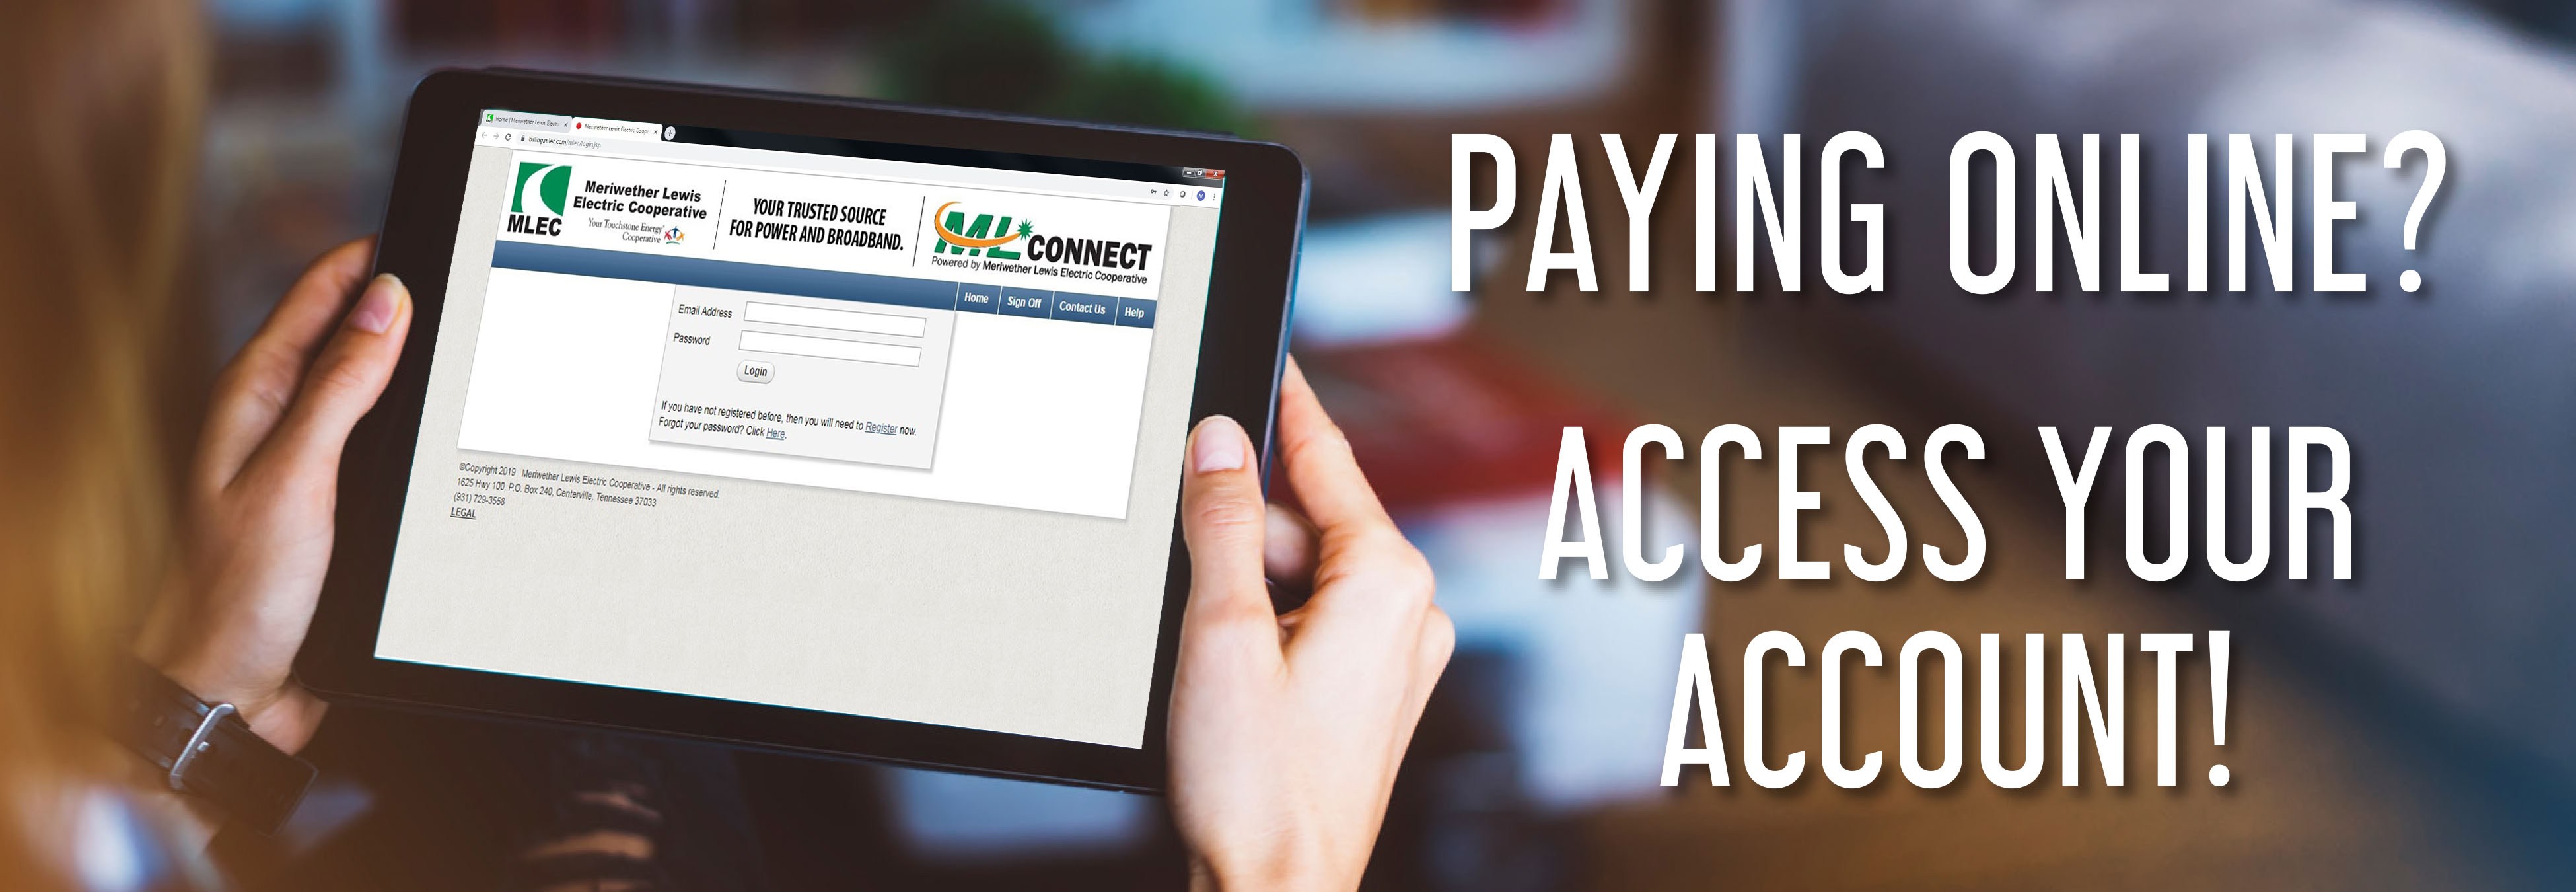 Paying online? Access my account.